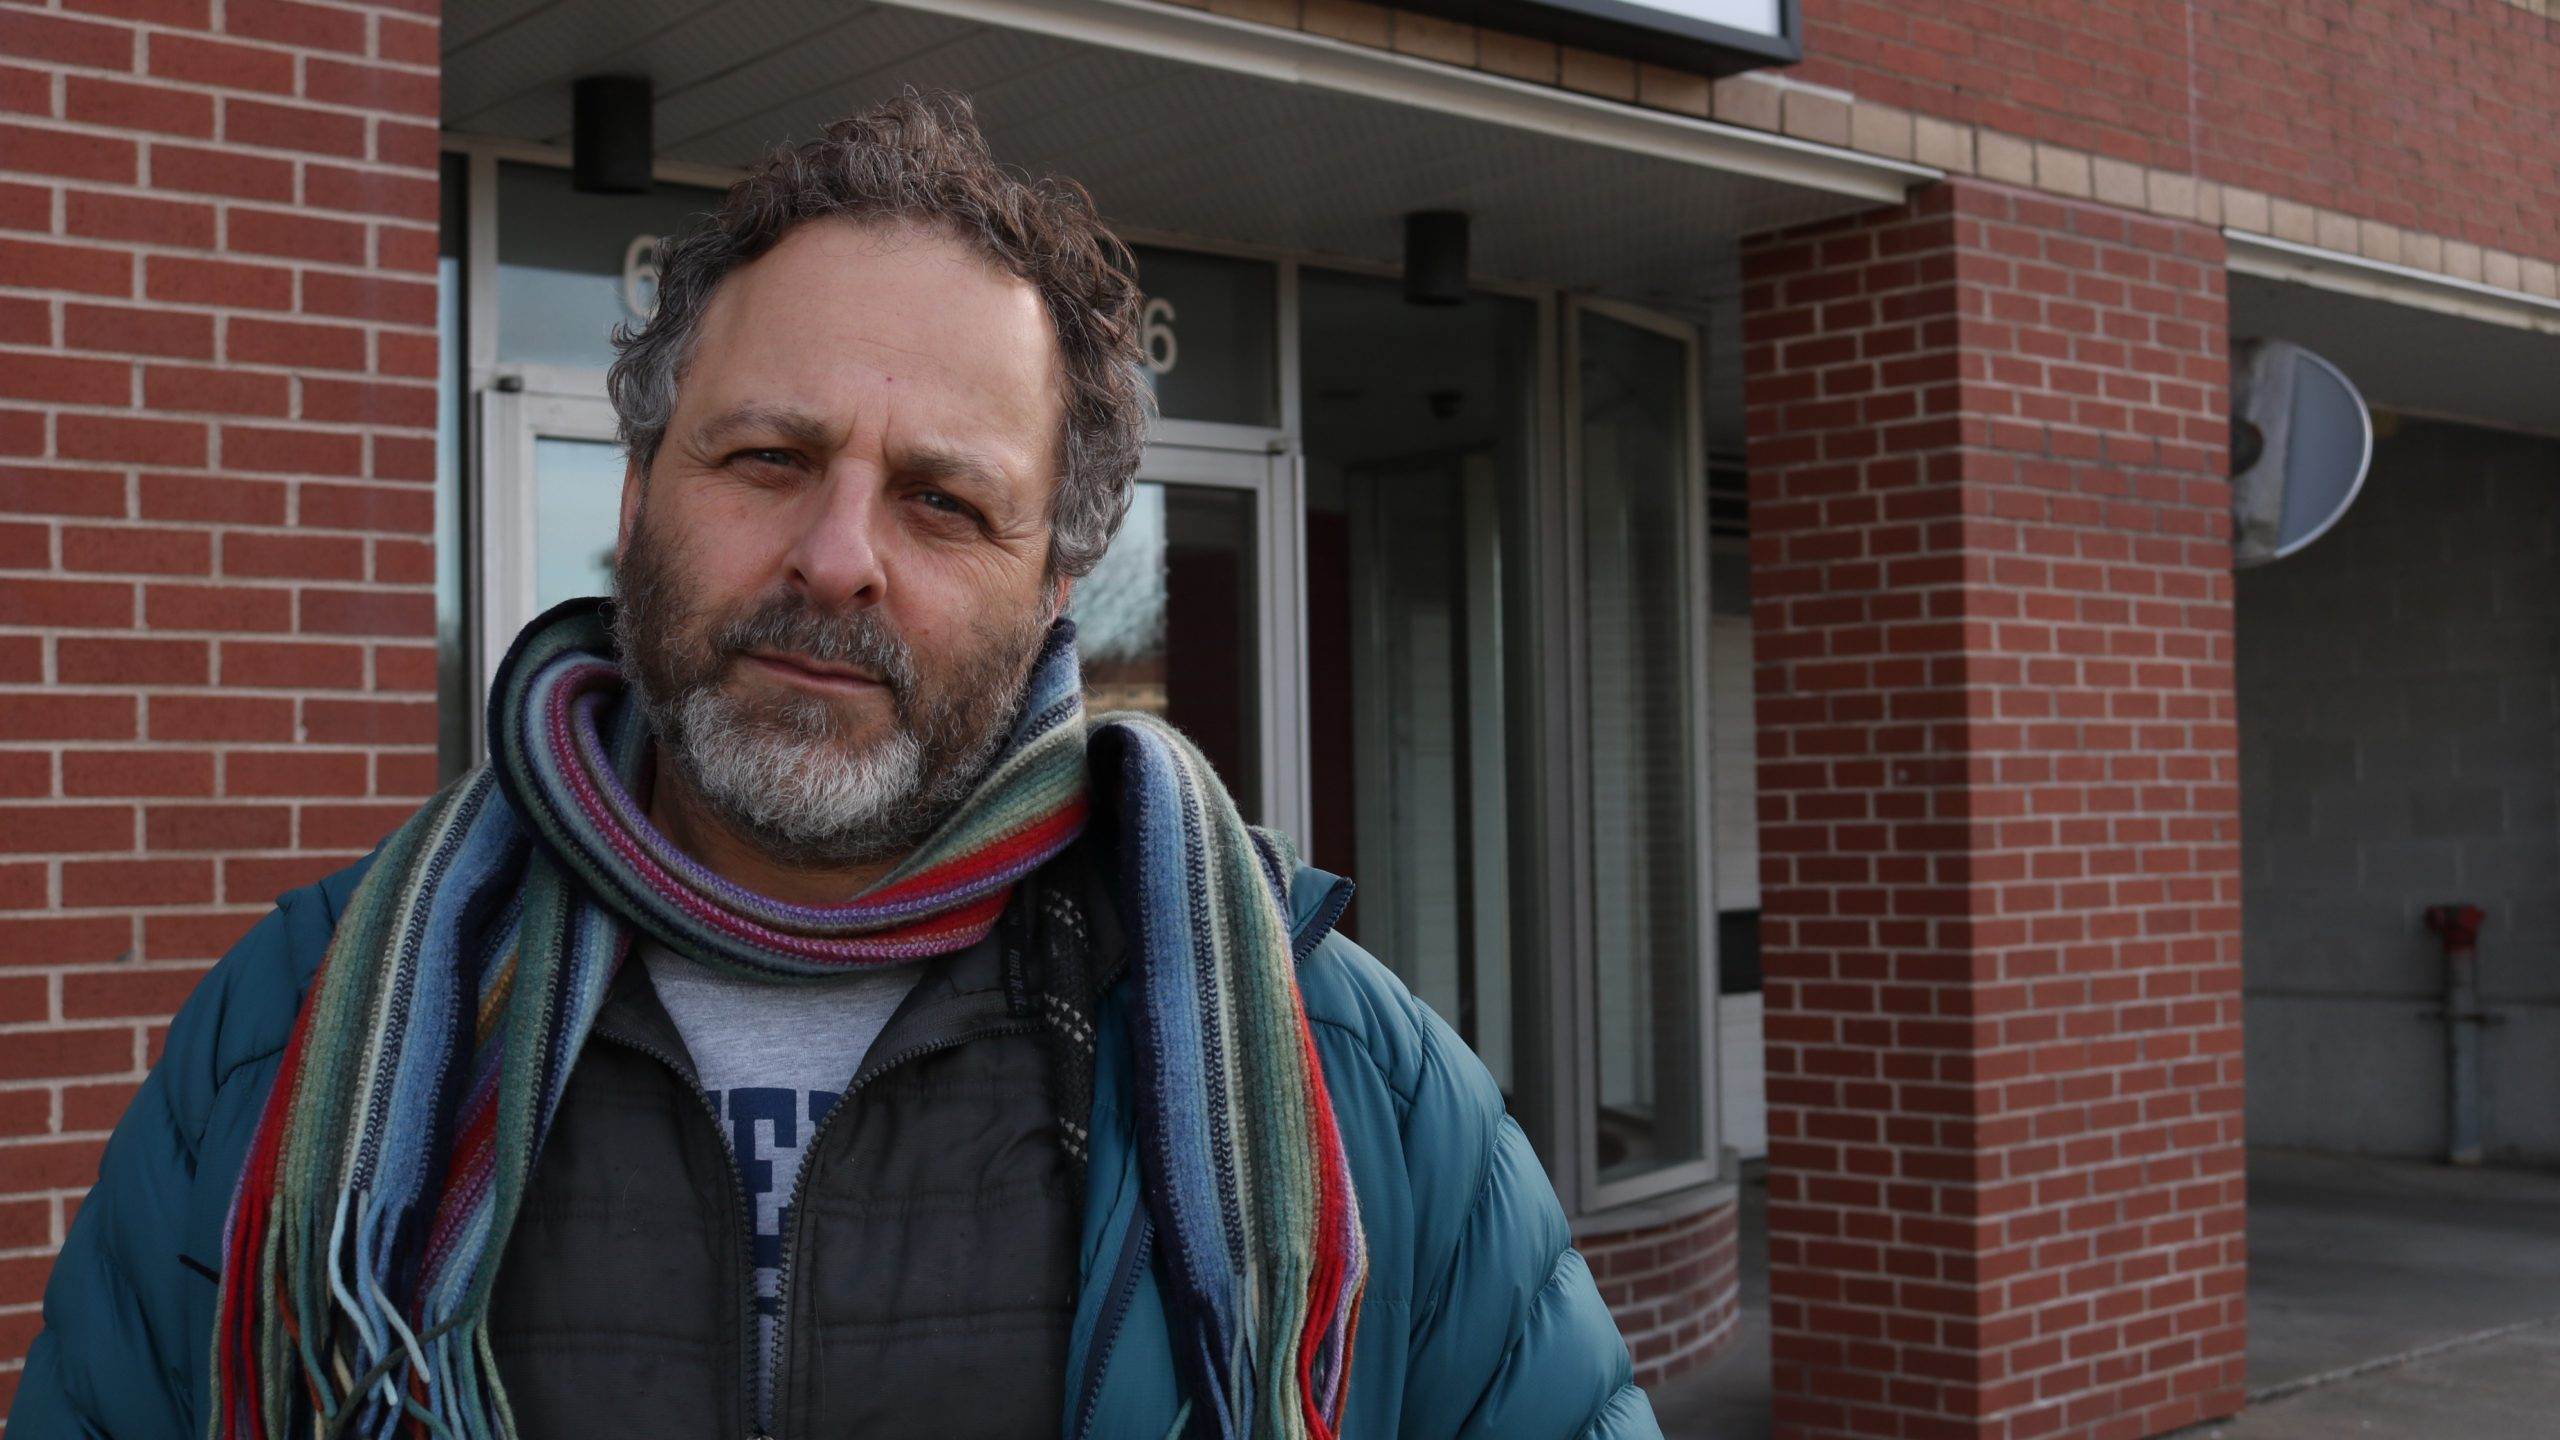 Jeff Karabanow, a professor of social work at Dalhousie University and co-founder of Out of the Cold, Halifax